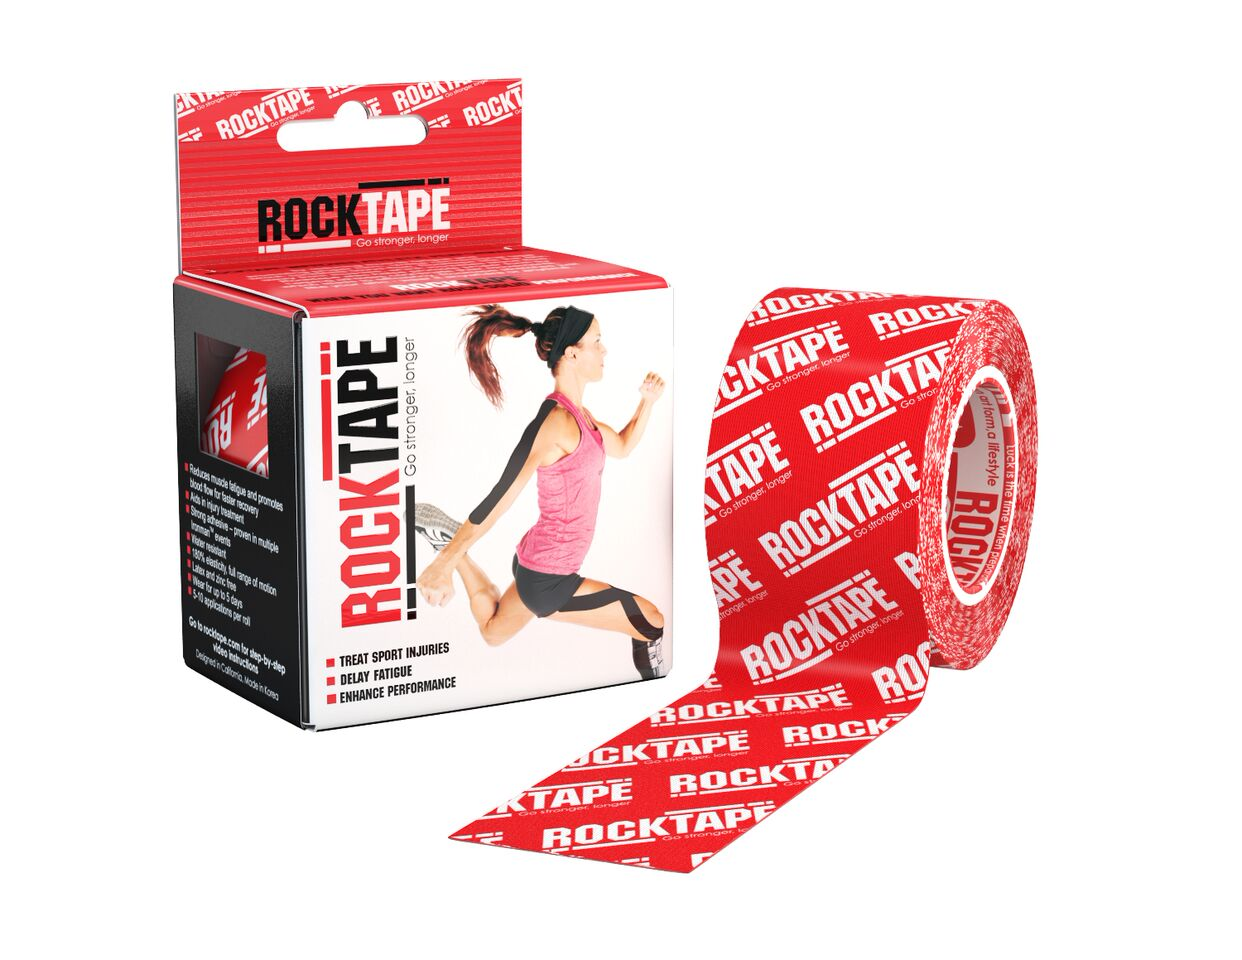 What is Kinesiology tape or Rock tape?